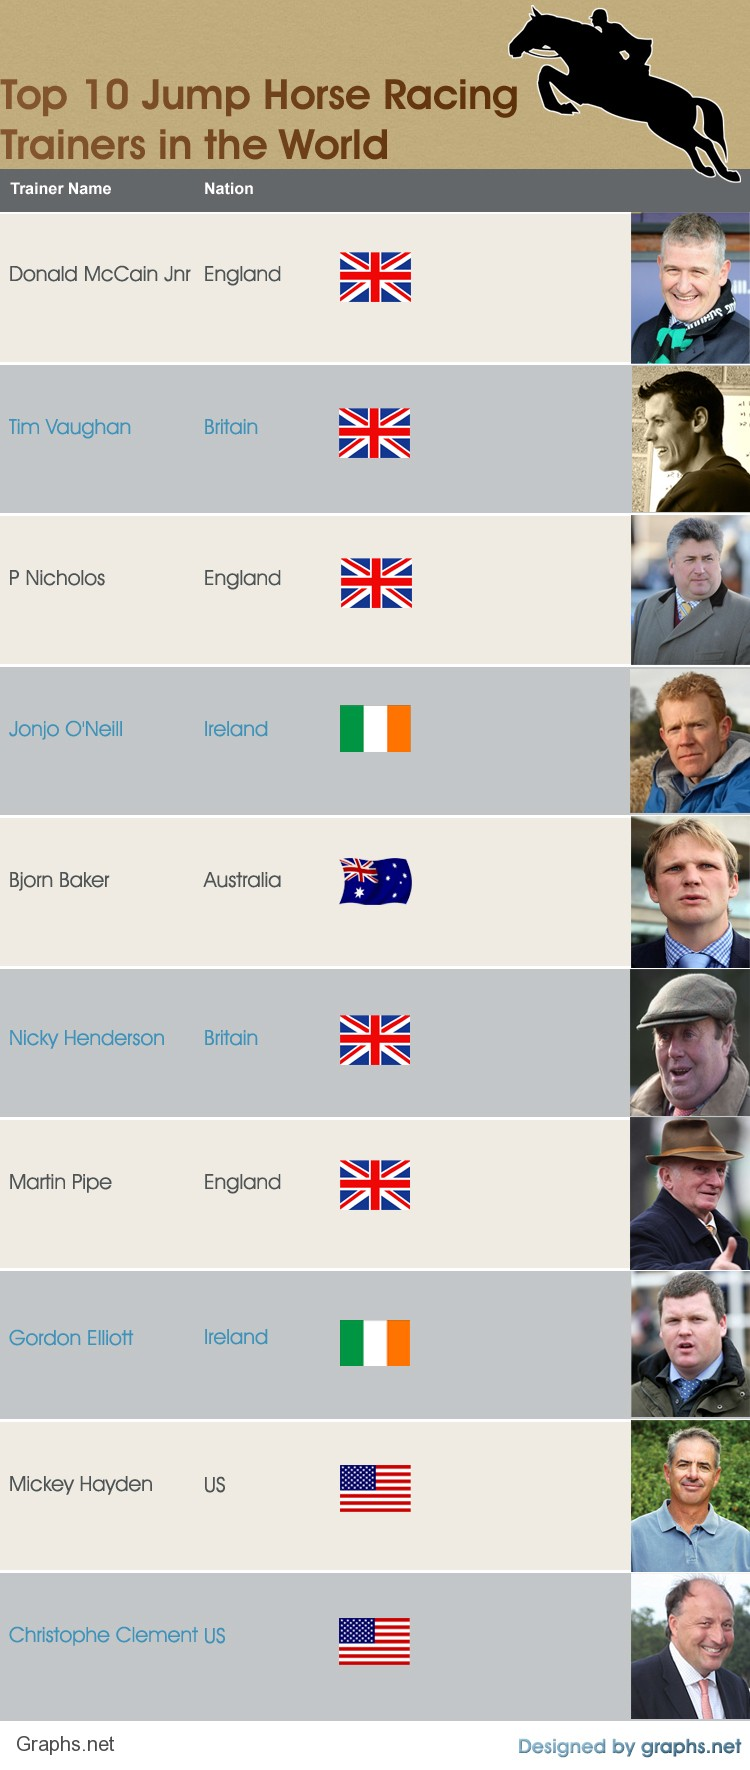 Top 10 Jump Horse Racing Trainers in the World